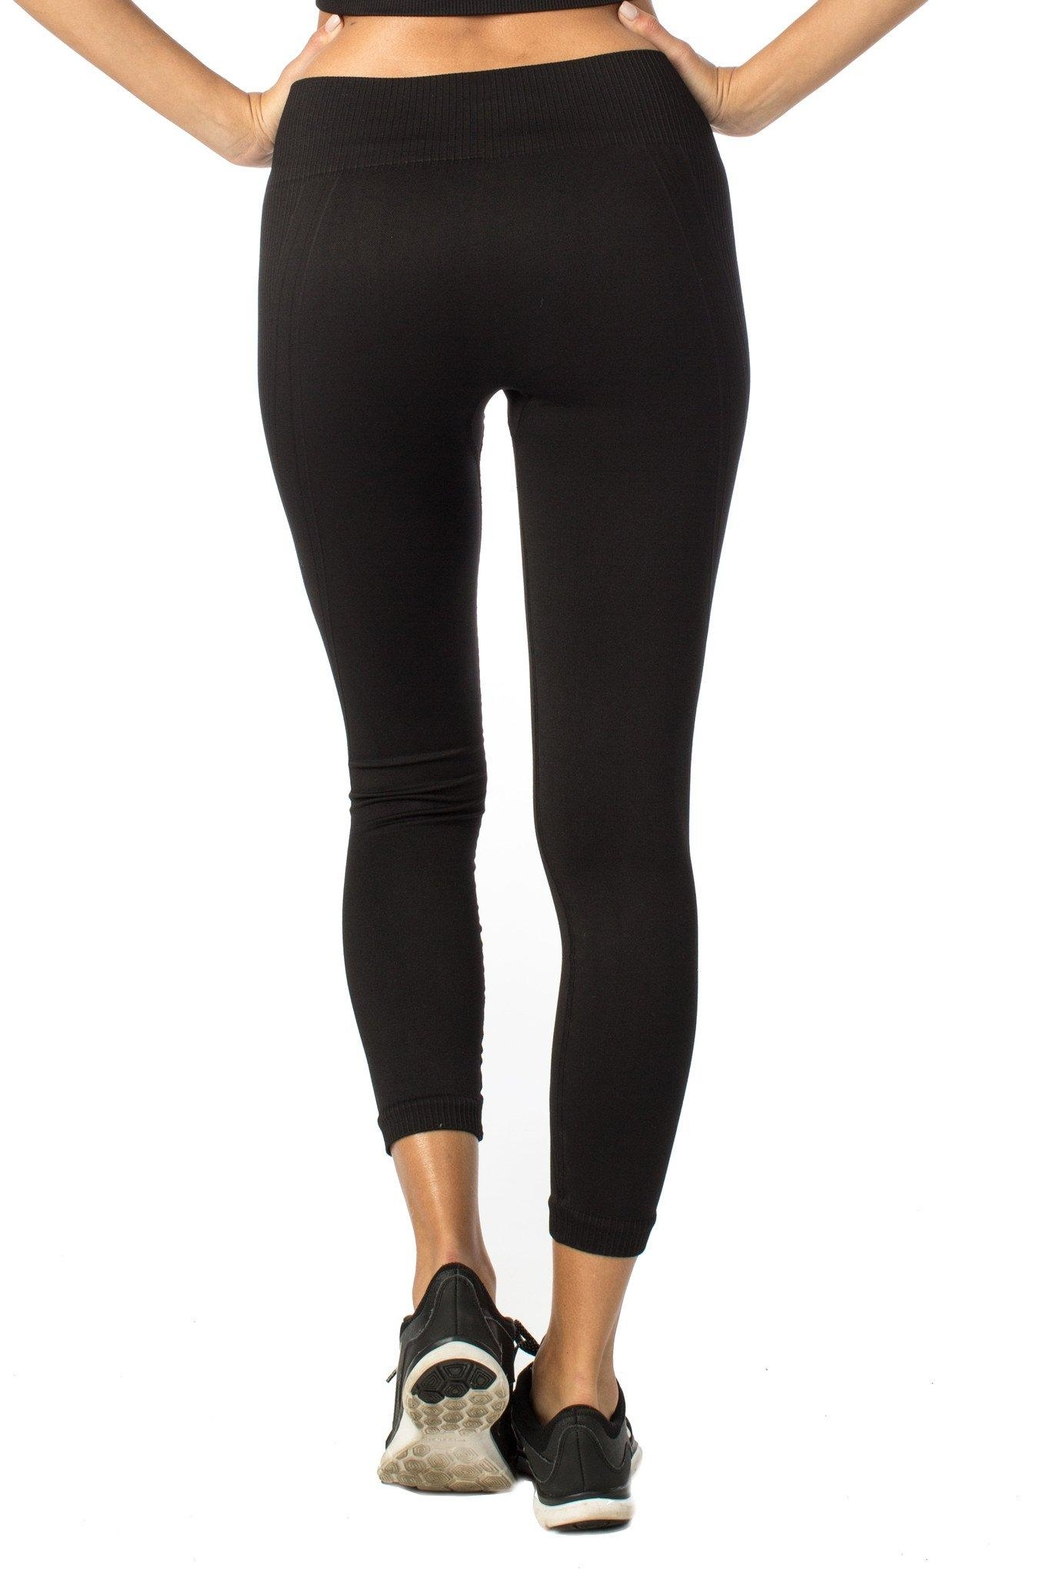 925 FIT Avocardio Seamless Legging - Side Cropped Image